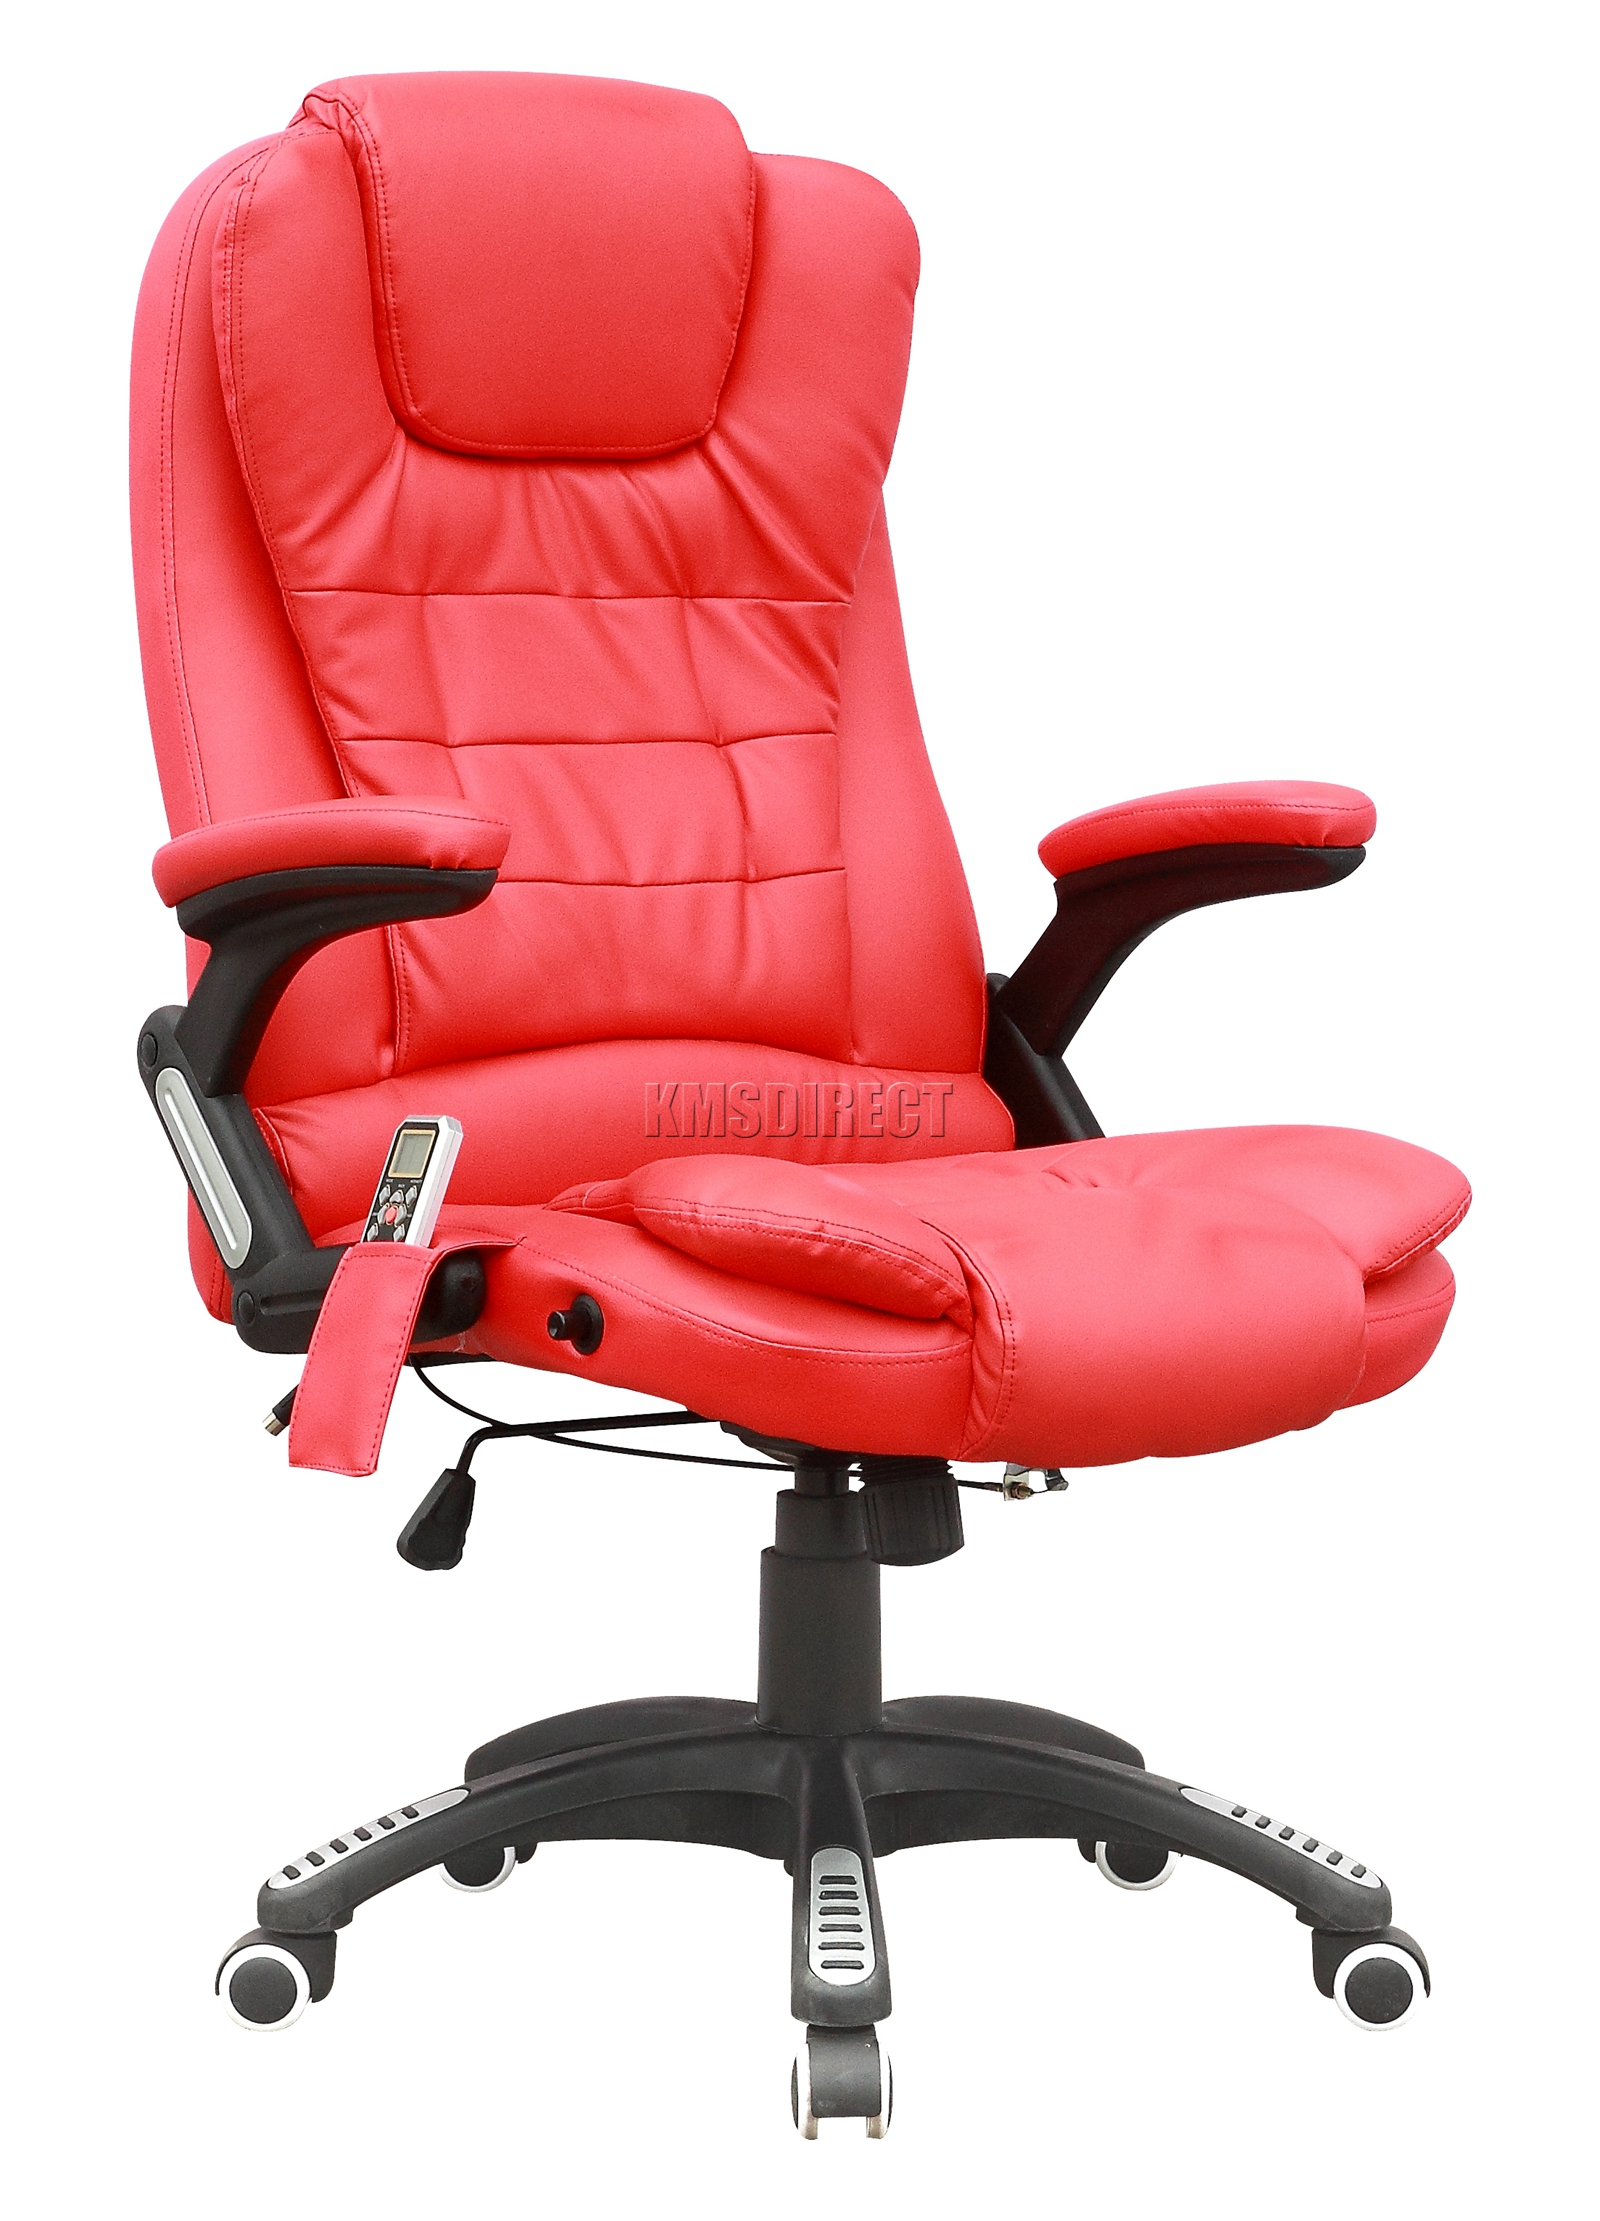 leather swivel office chair. Sentinel FoxHunter 6 Point Massage Office Computer Chair Luxury Leather Swivel Reclining T